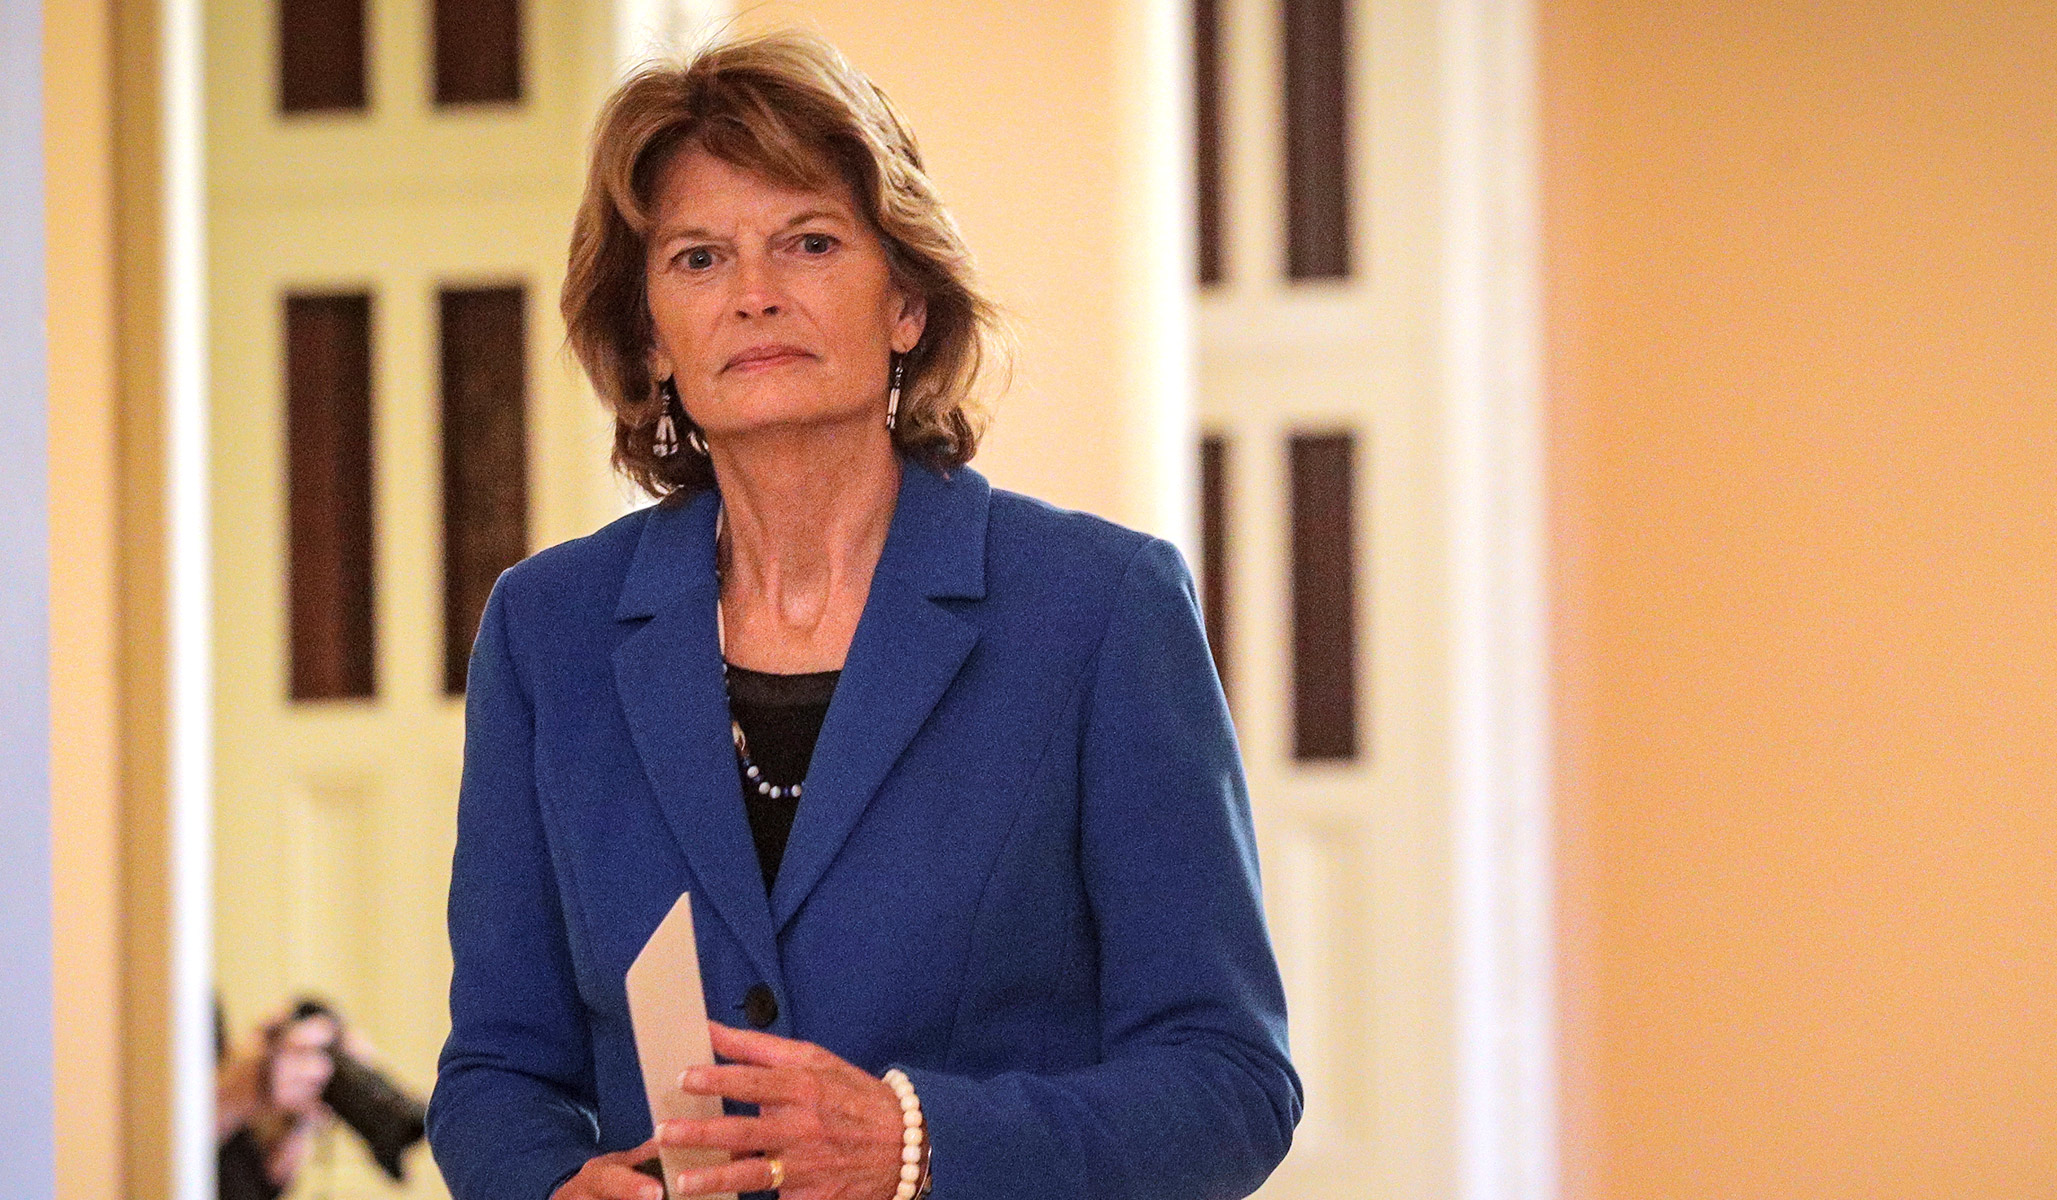 Sen. Murkowski Says Confirming Supreme Court Nominee in 2020 Would Be 'Double Standard' thumbnail